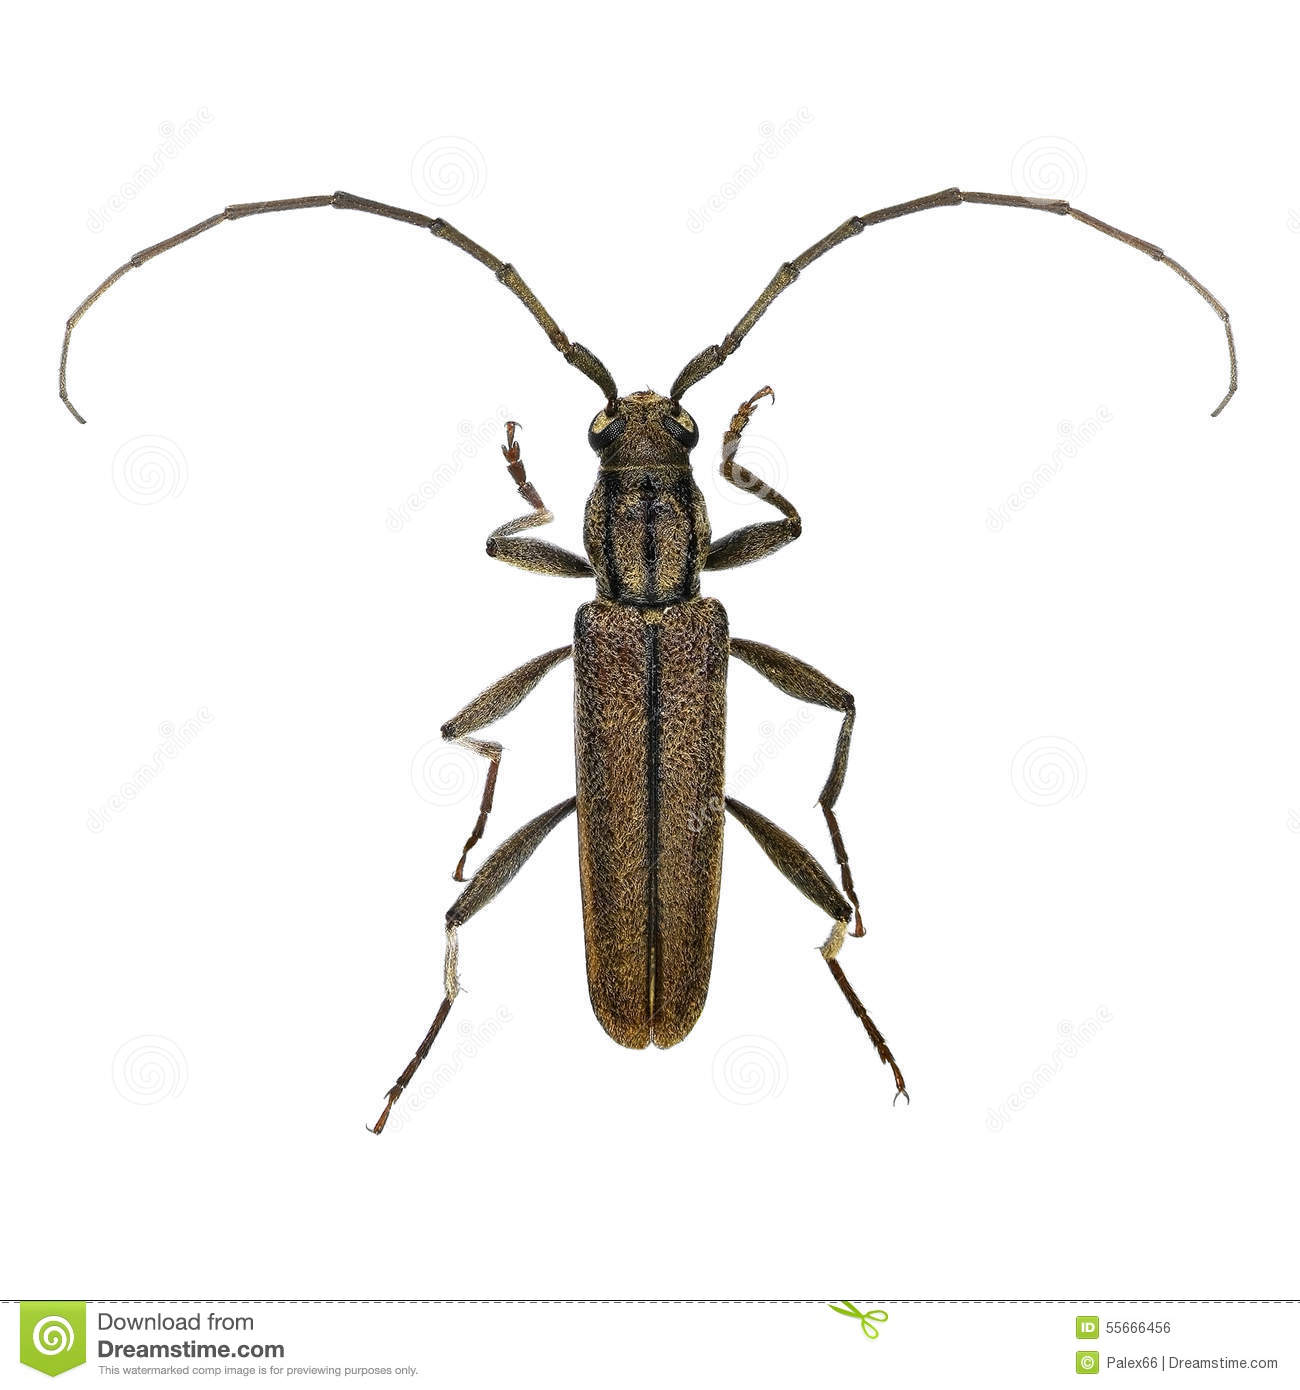 Cupressus long-horned beetle